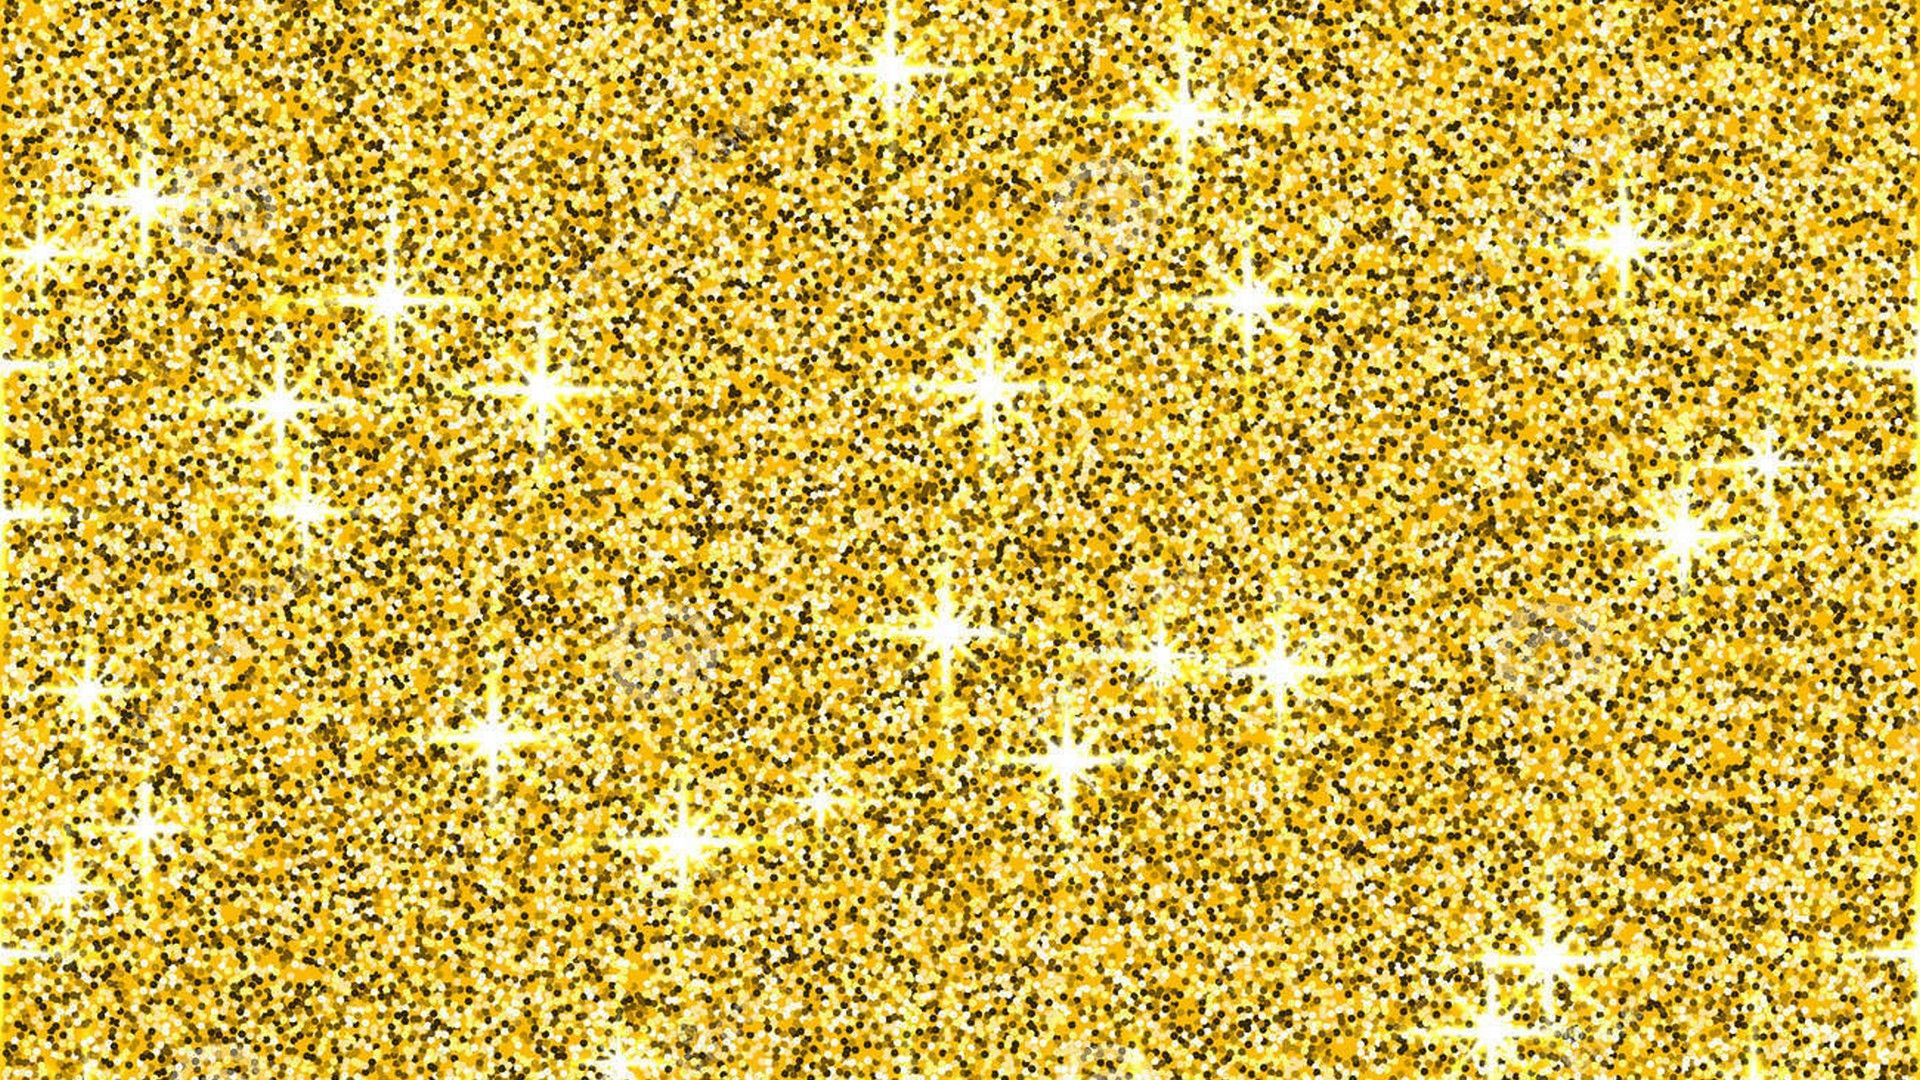 Wallpaper Gold Glitter Desktop Wallpaper, Hd cute